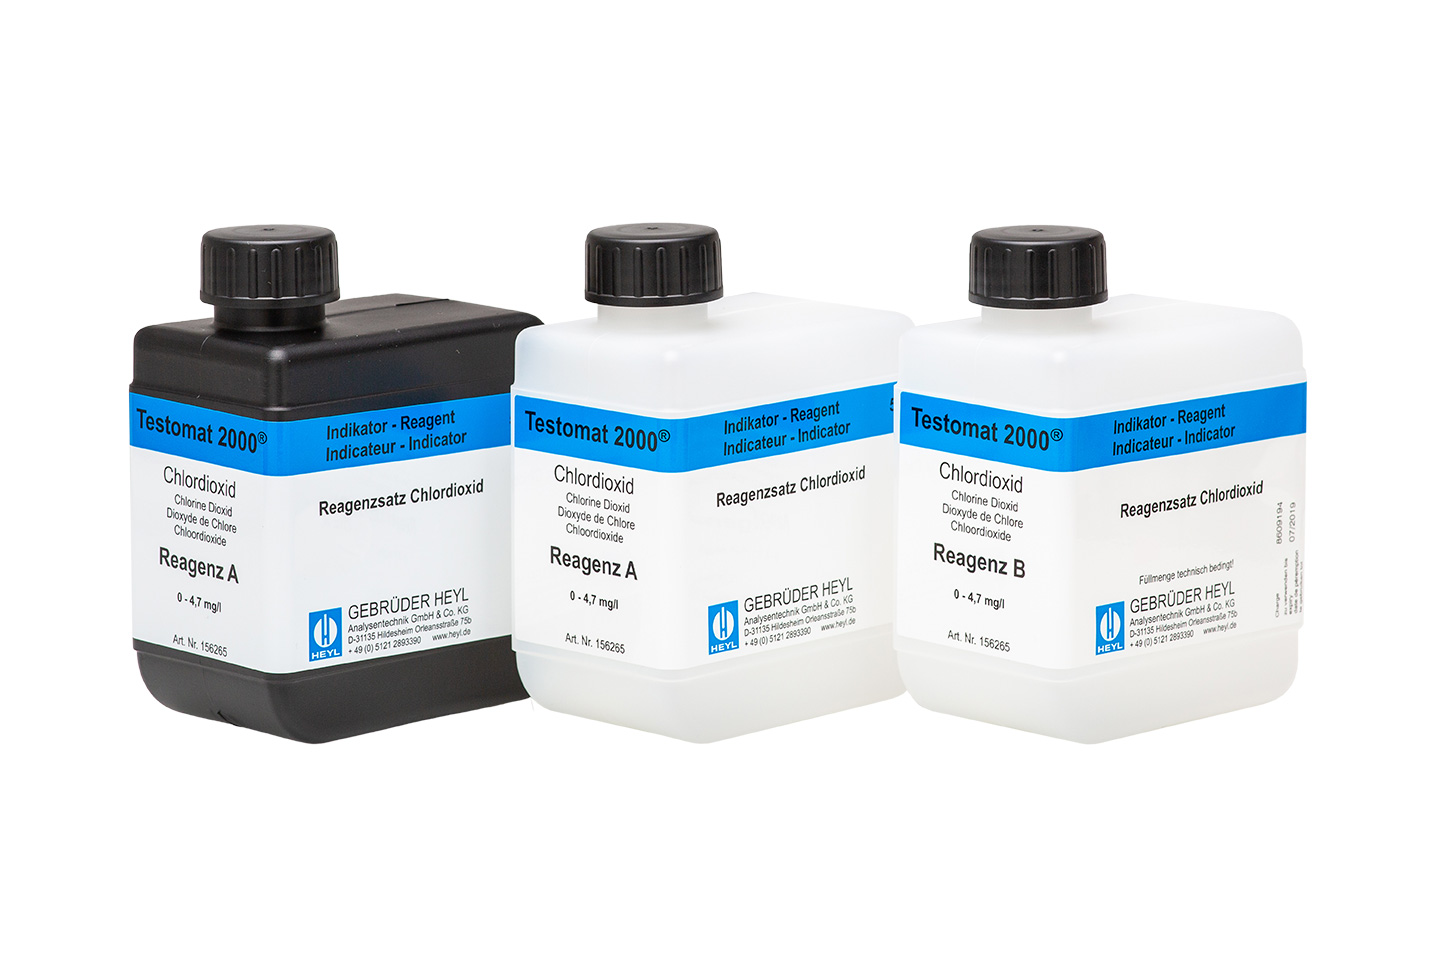 Testomat 2000® ClO2 Reagents A and B